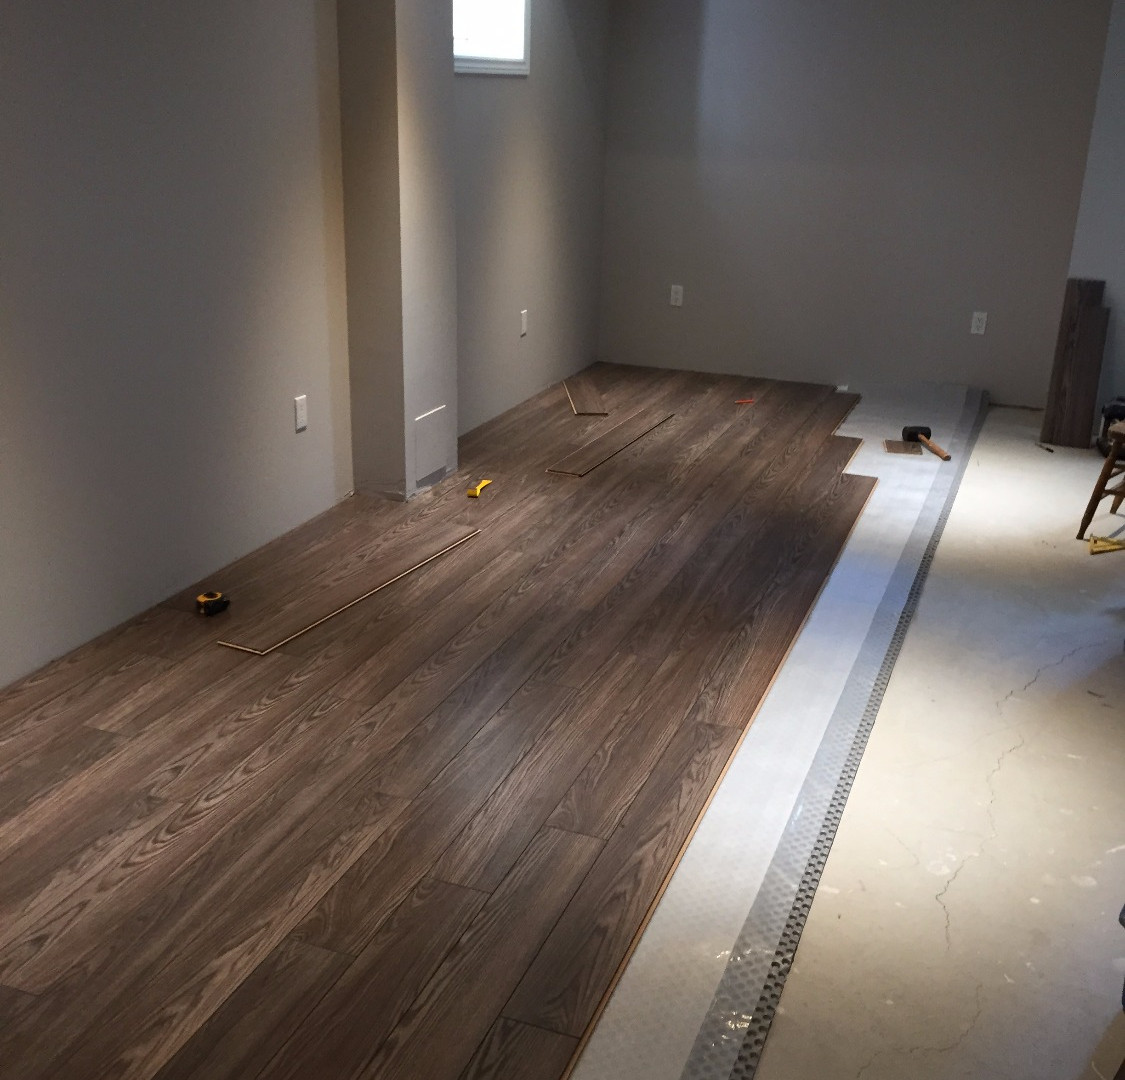 Jonesridge Basement Flooring (1/2)